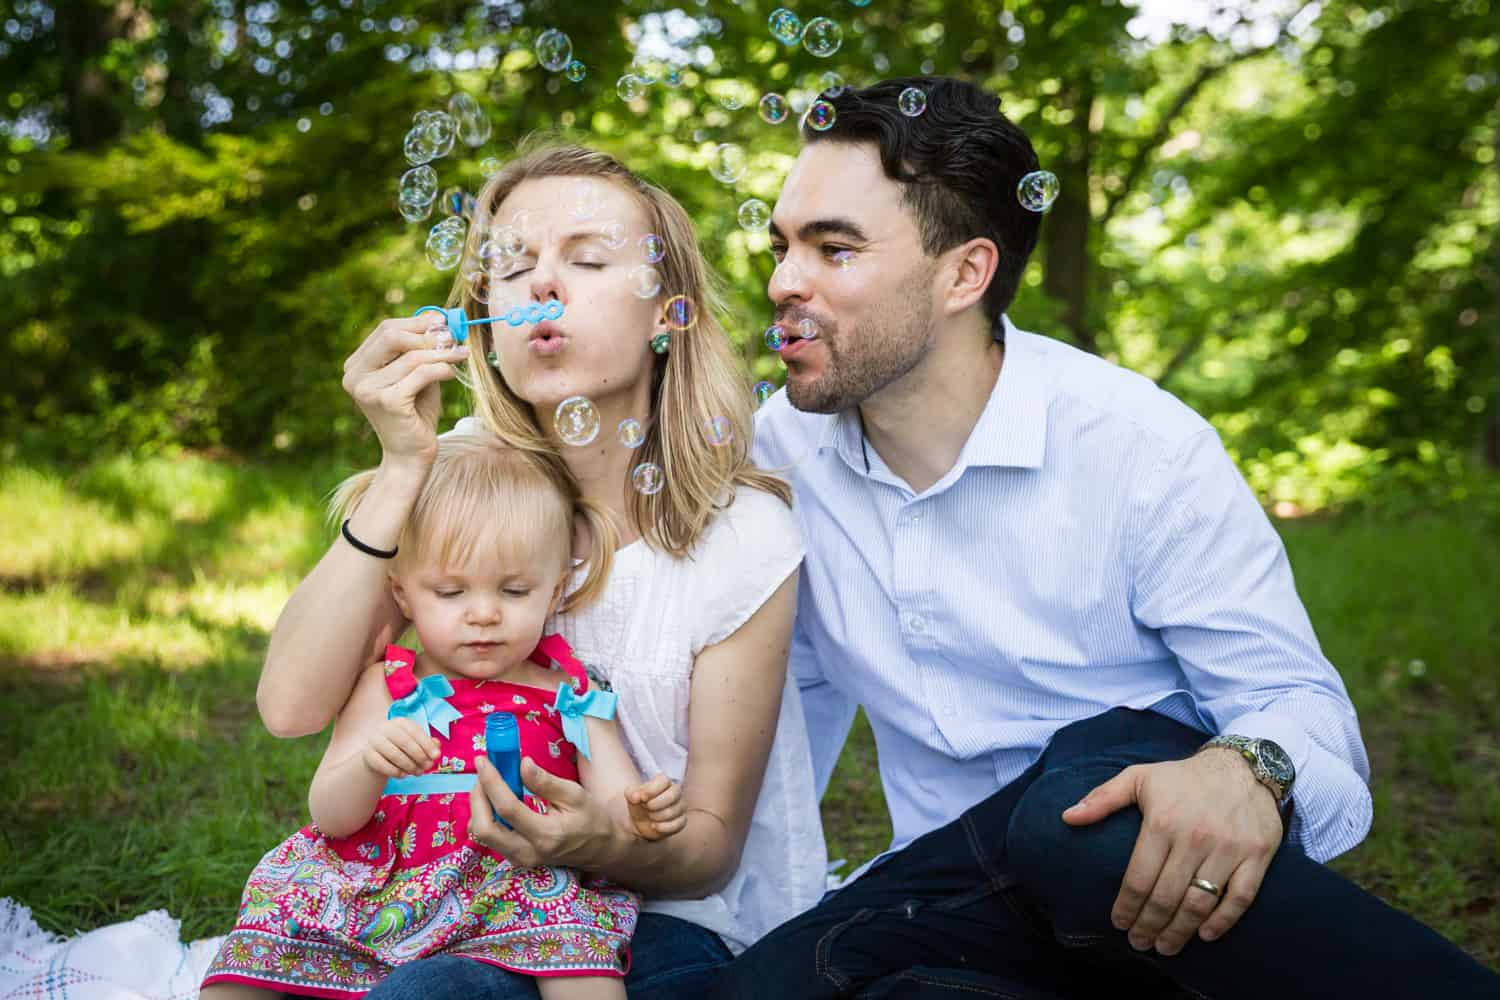 Parents and little girl blowing bubbles during a Forest Park family photo shoot